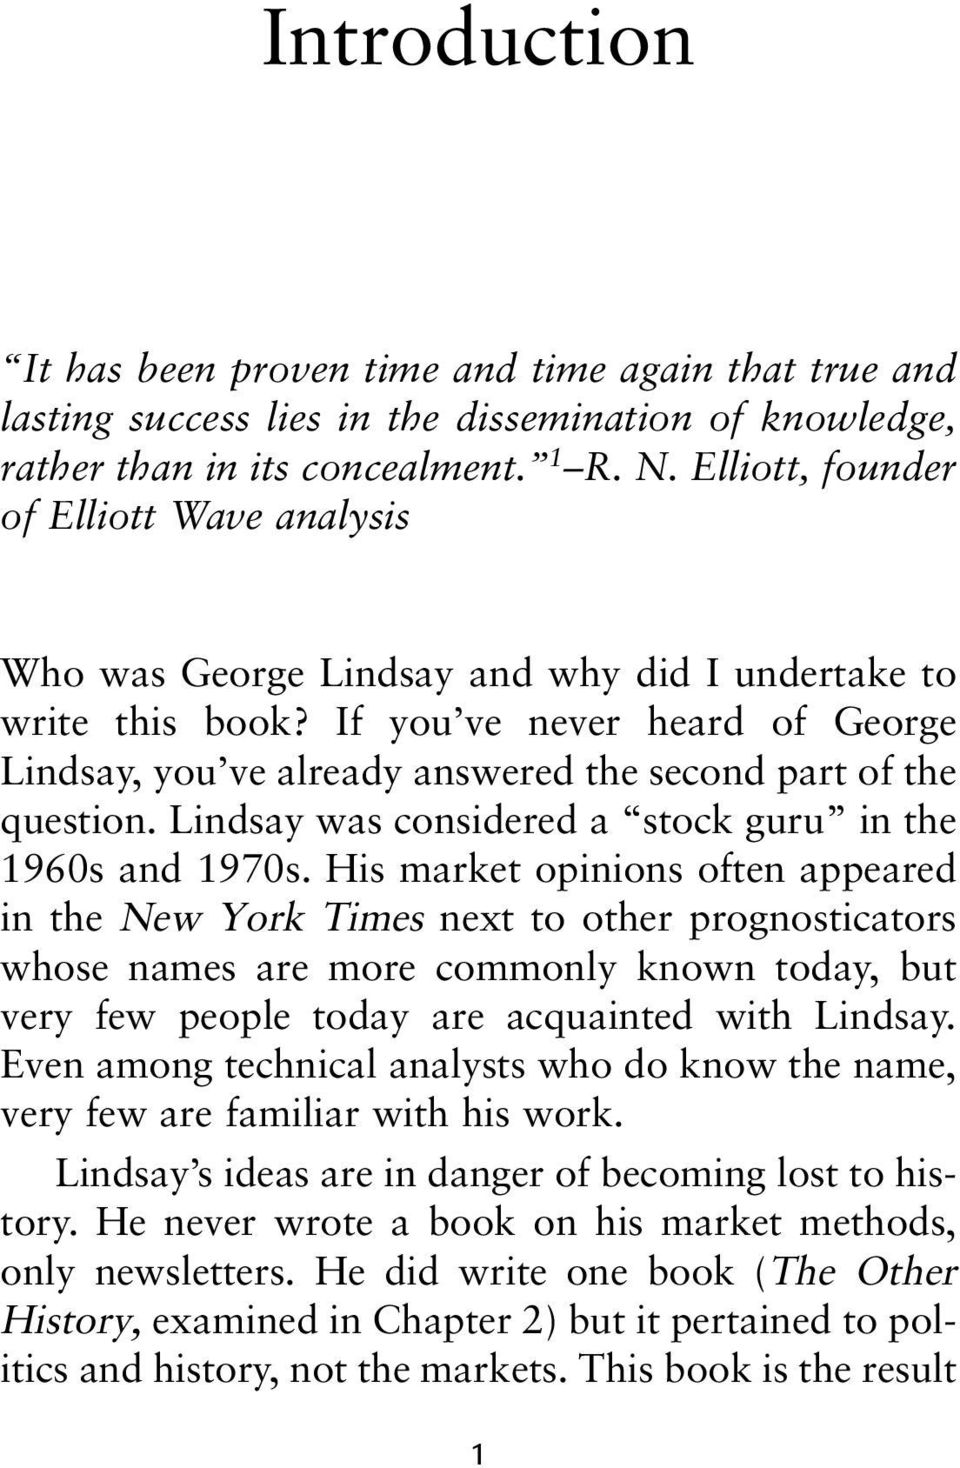 If you ve never heard of George Lindsay, you ve already answered the second part of the question. Lindsay was considered a stock guru in the 1960s and 1970s.